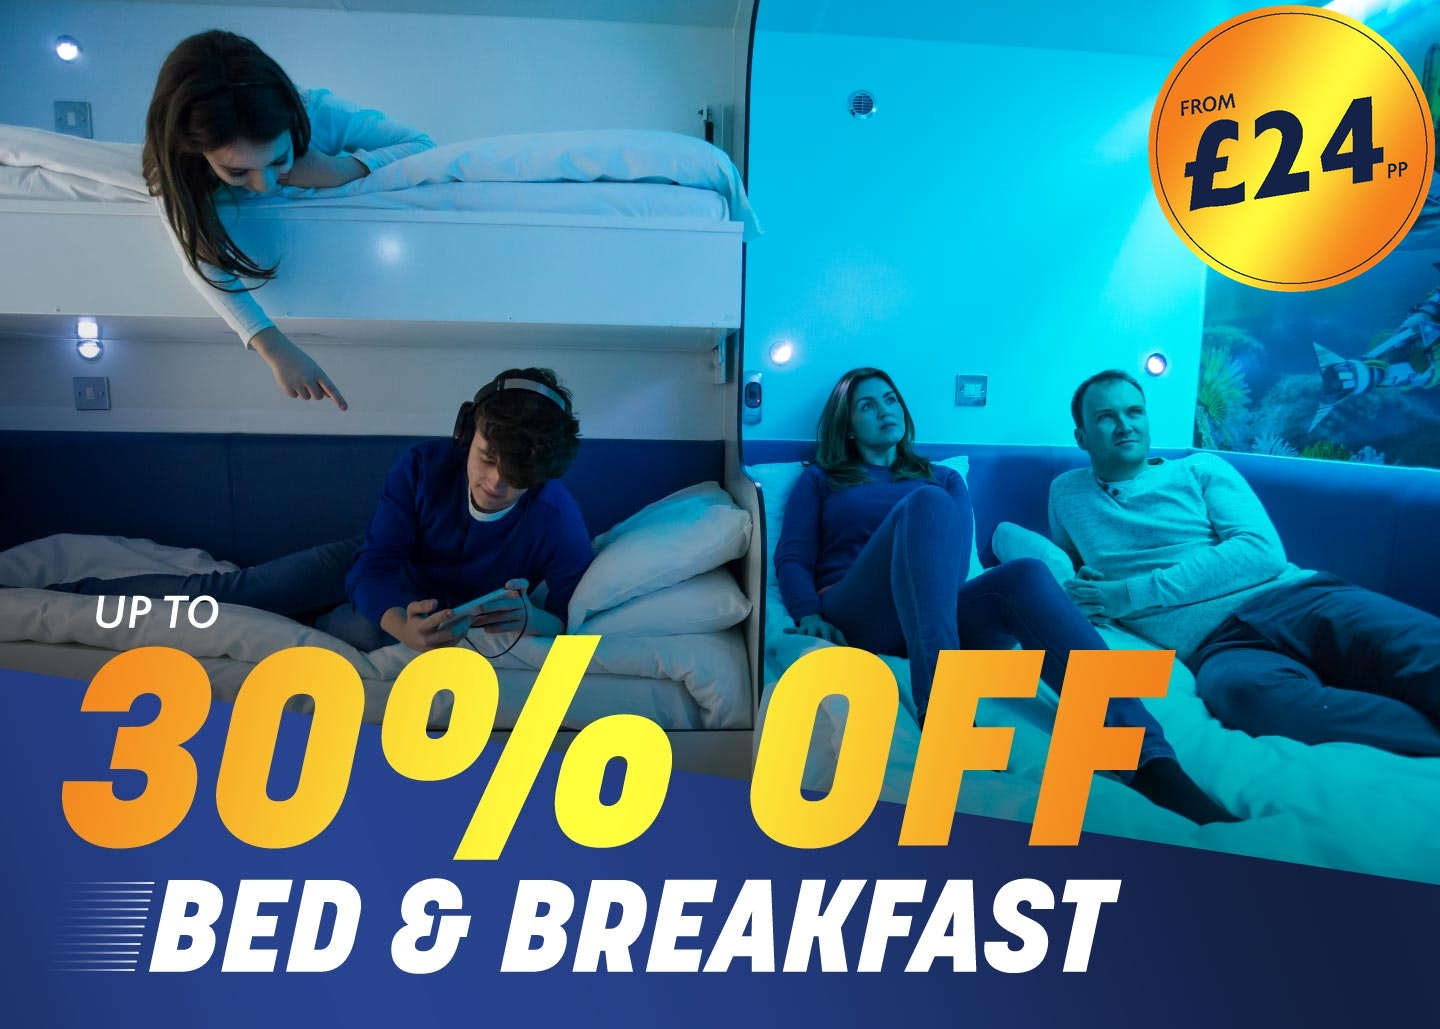 Bed and Breakfast package with Thorpe Breaks